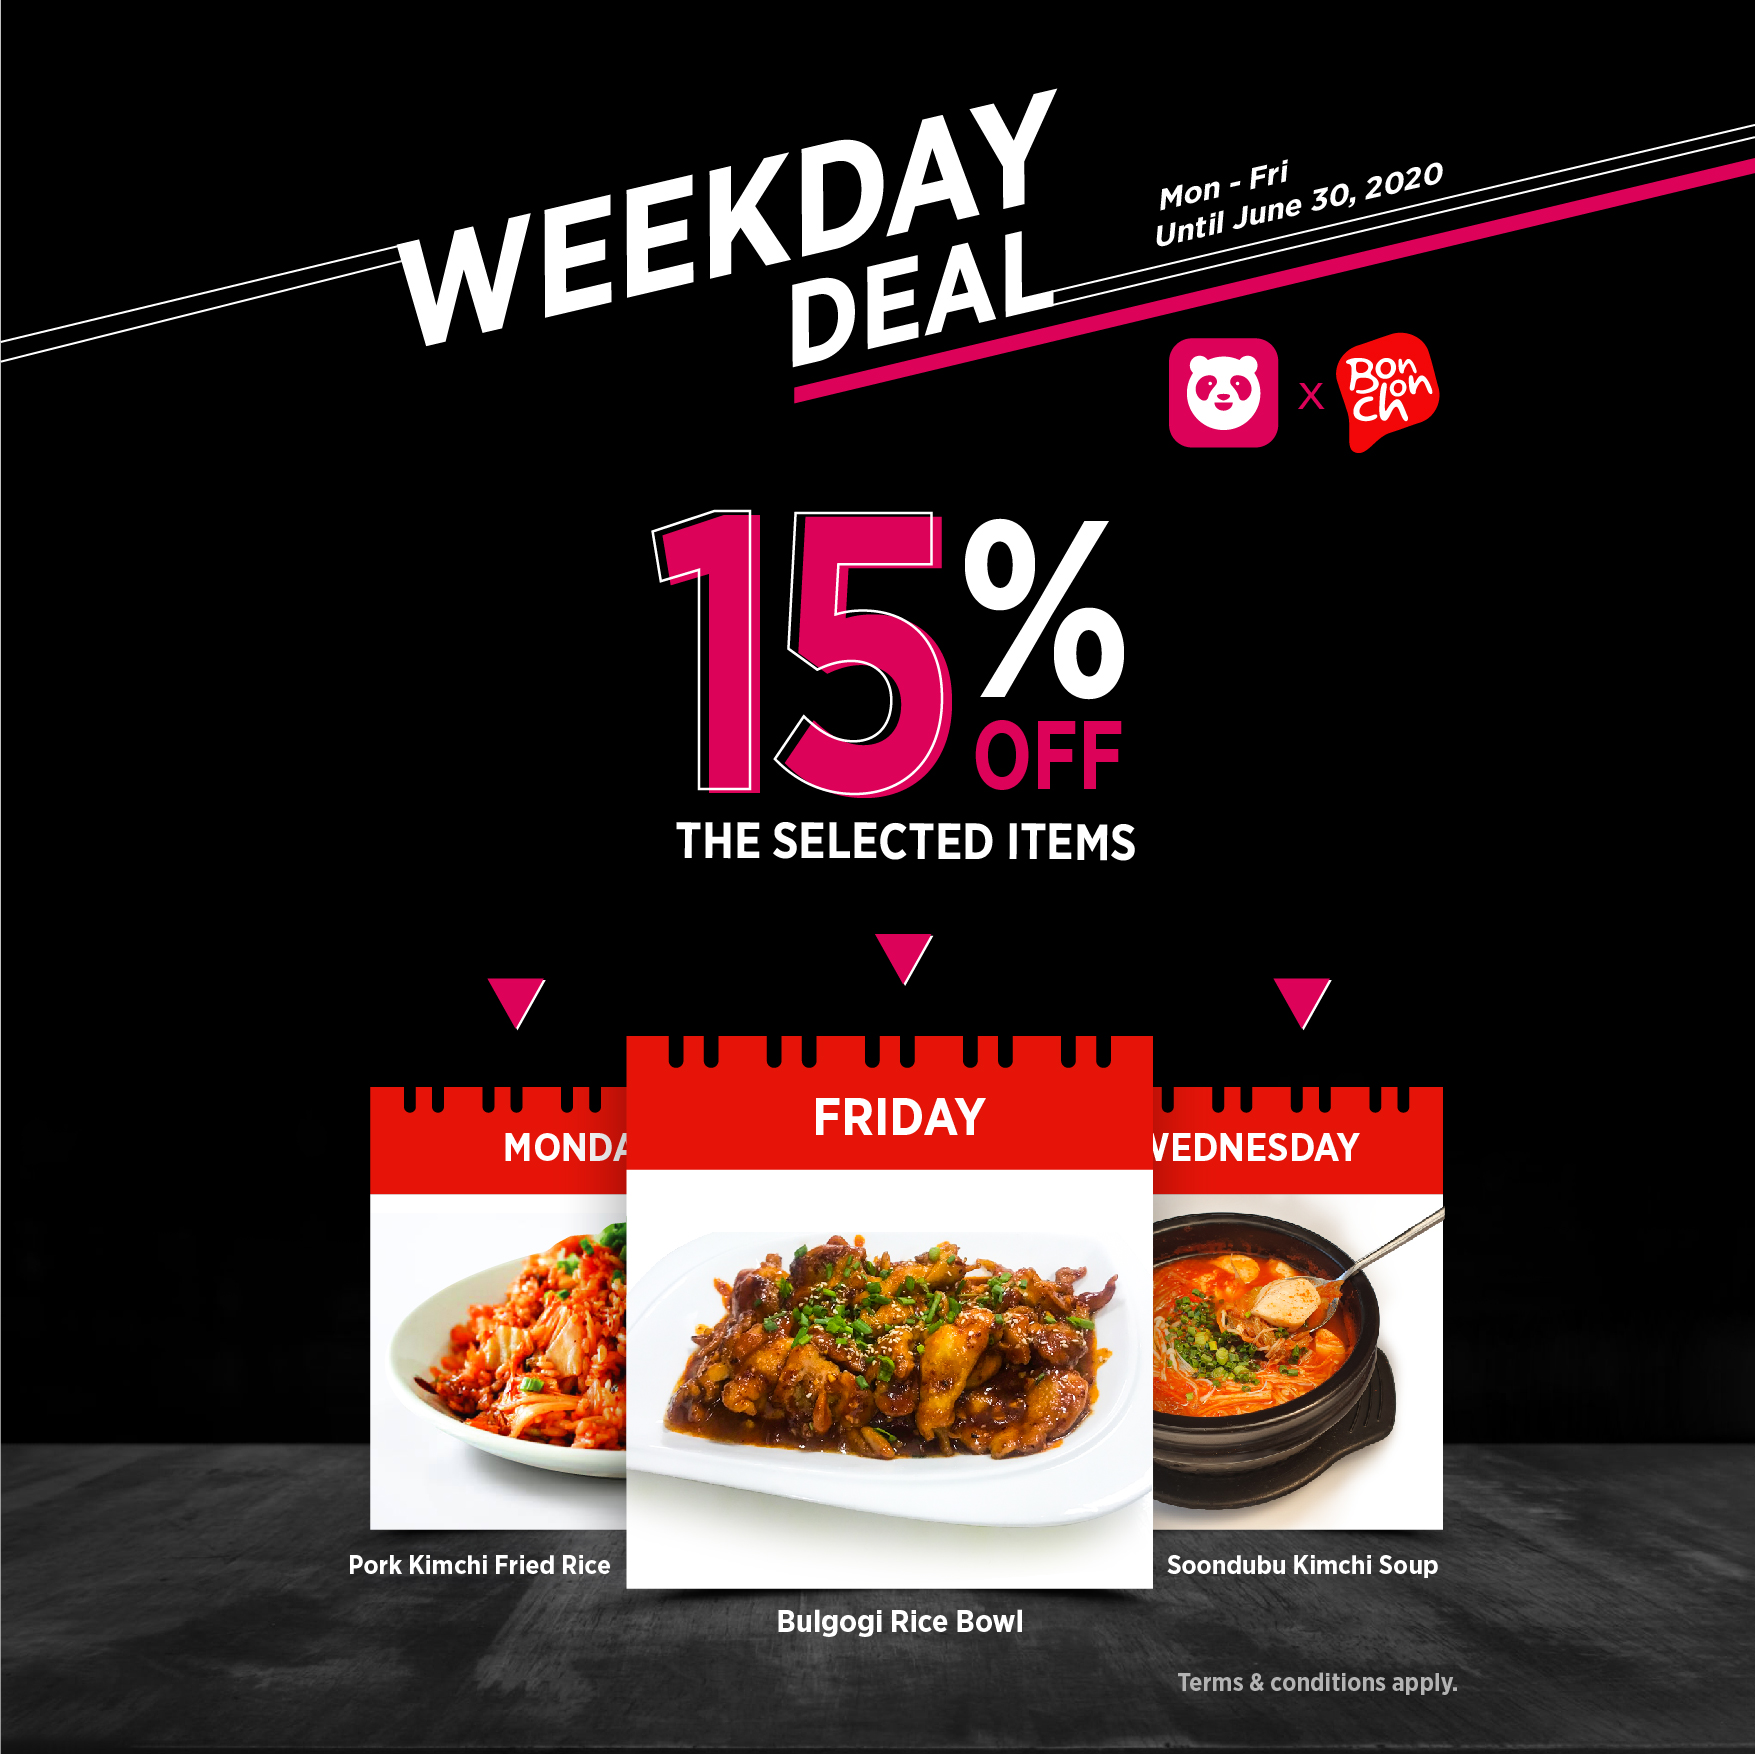 Weekday Deal 15% Off